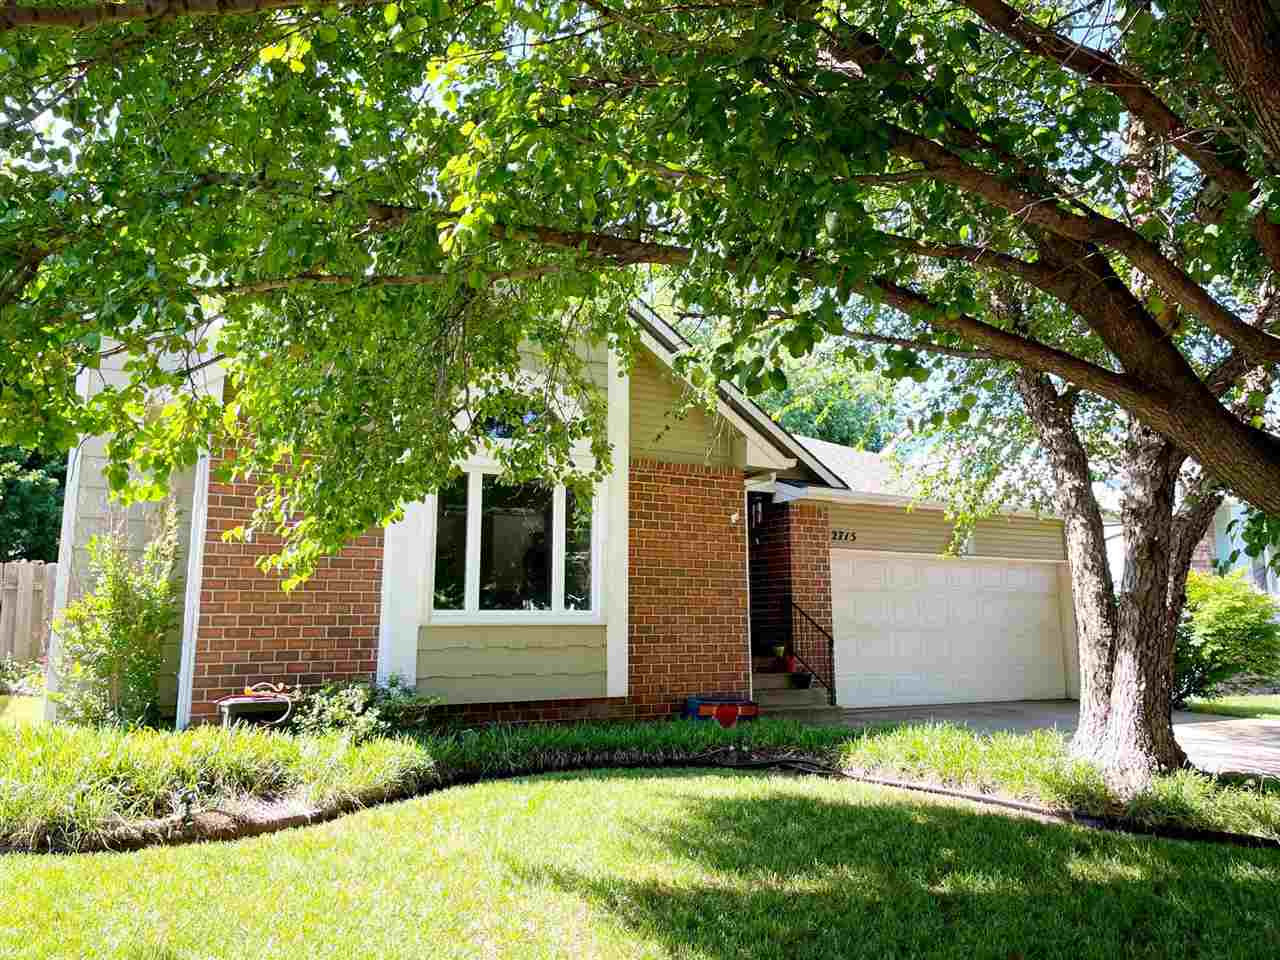 This home greets you with terrific curb appeal and mature trees. The main floor offers a living room